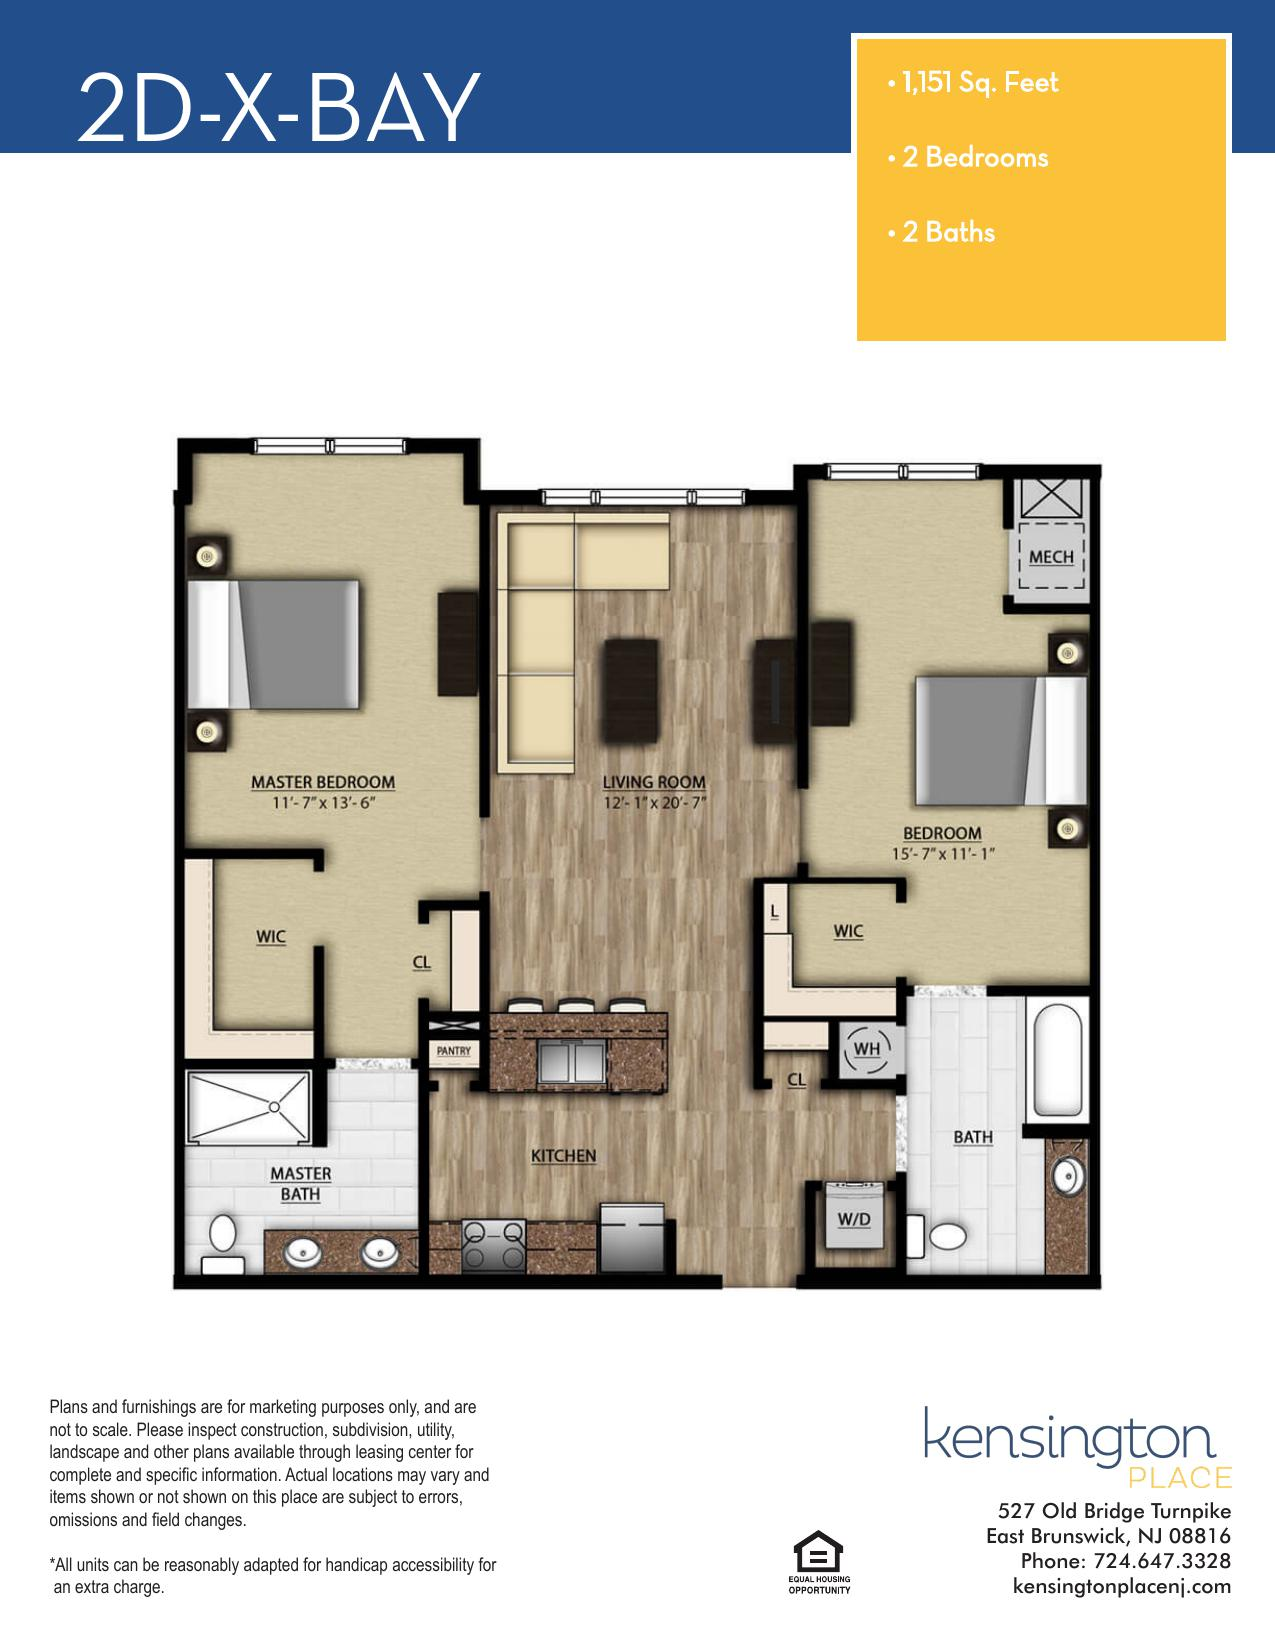 Kensington Place Apartment Floor Plan 2DX BAY